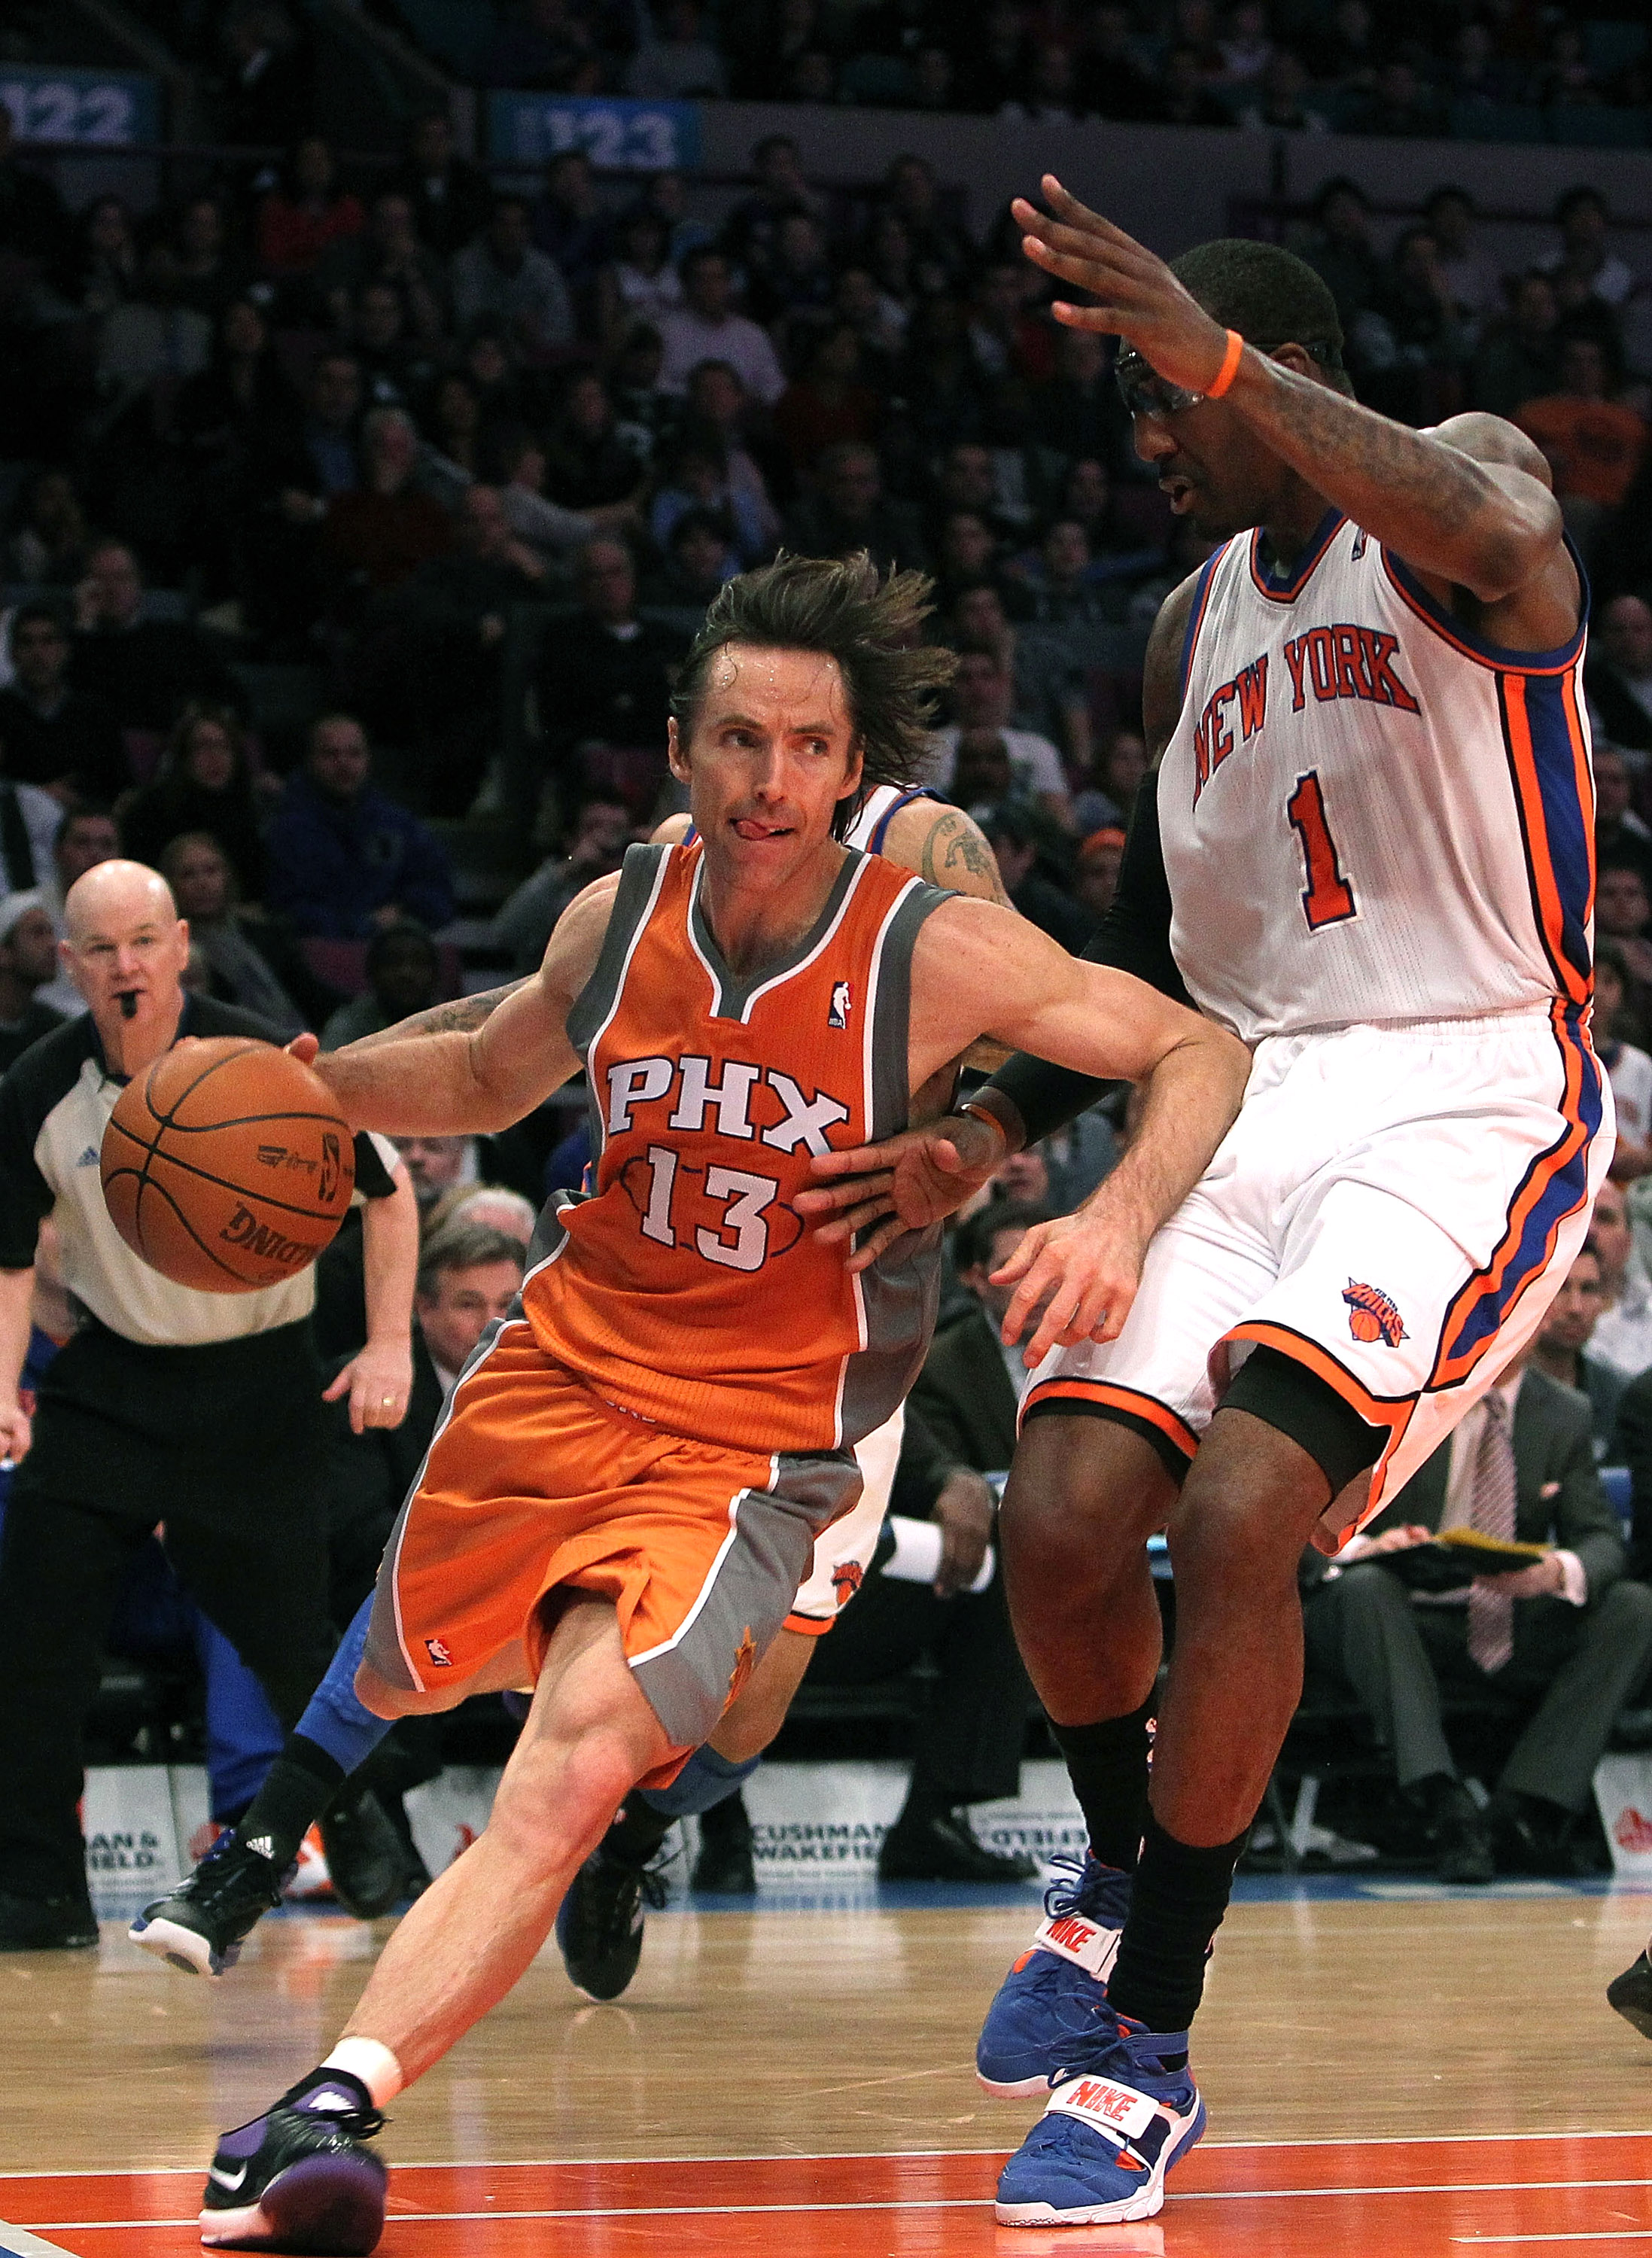 NEW YORK, NY - JANUARY 17:  Steve Nash #13 of the Phoenix Suns drives to the basket against Amar'e Stoudemire #1 of the New York Knicks at Madison Square Garden on January 17, 2011 in New York City. NOTE TO USER: User expressly acknowledges and agrees tha